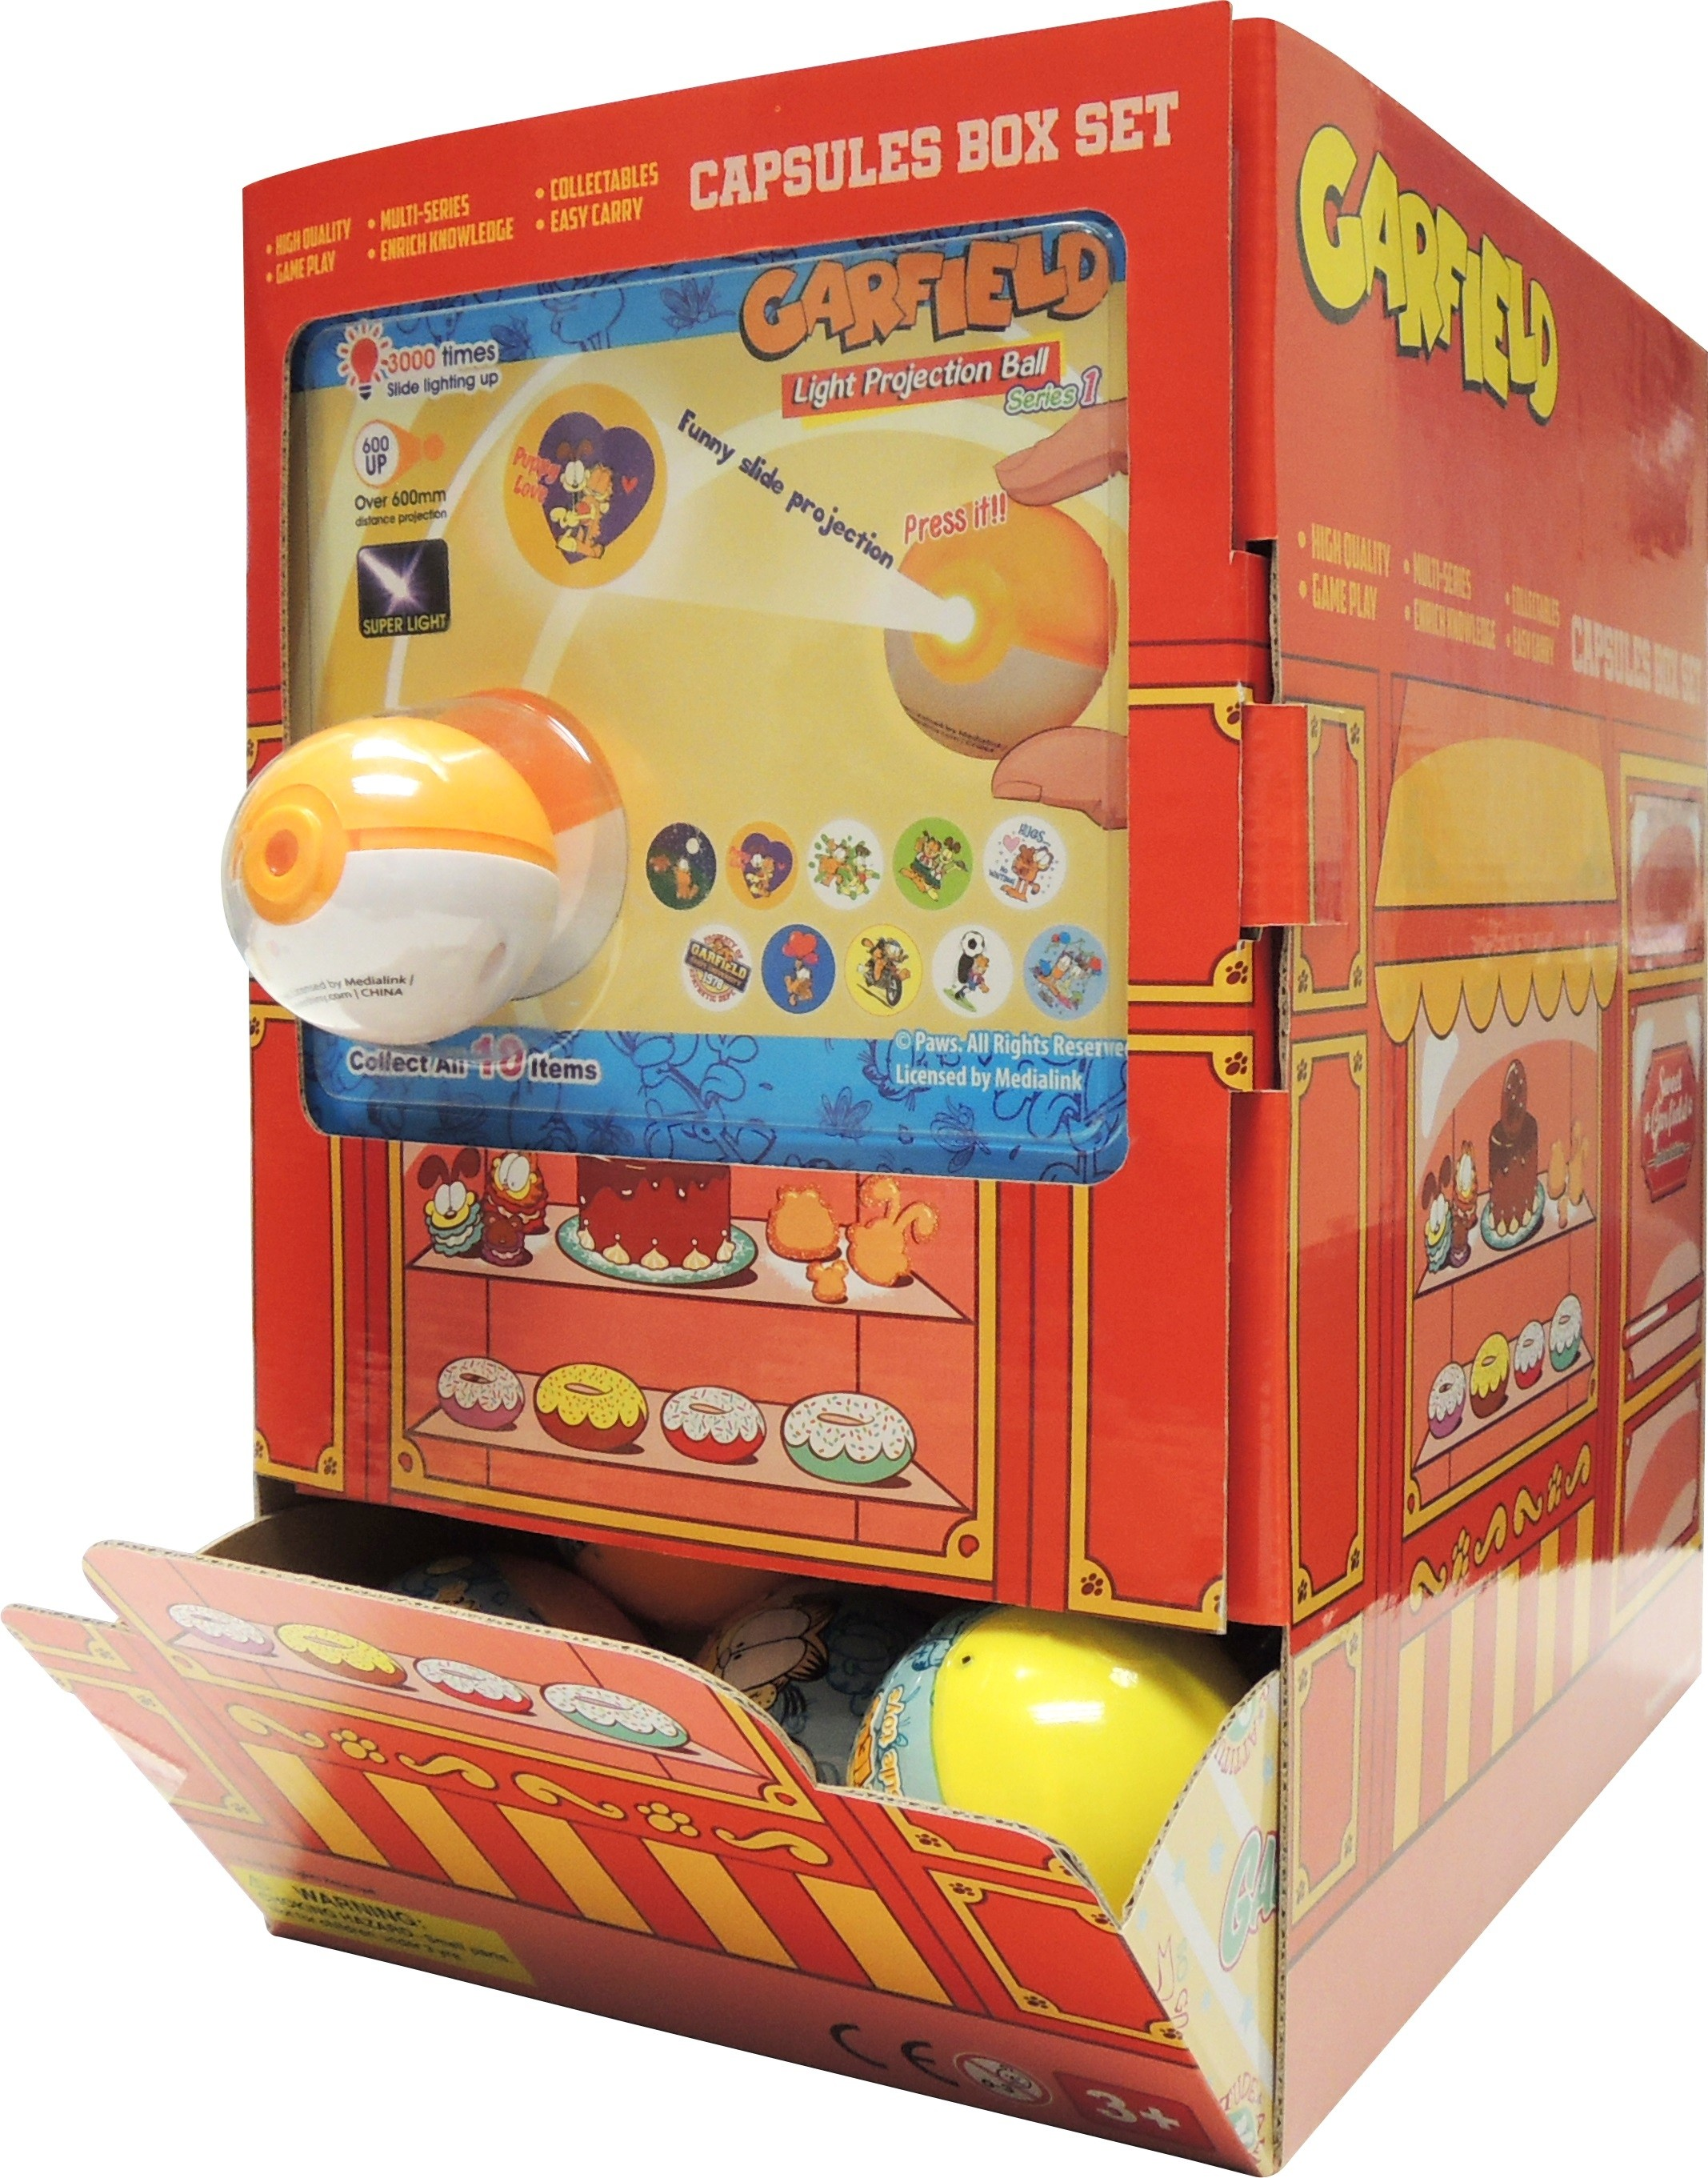 Garfield Projector Ball (50 Capsules Set)